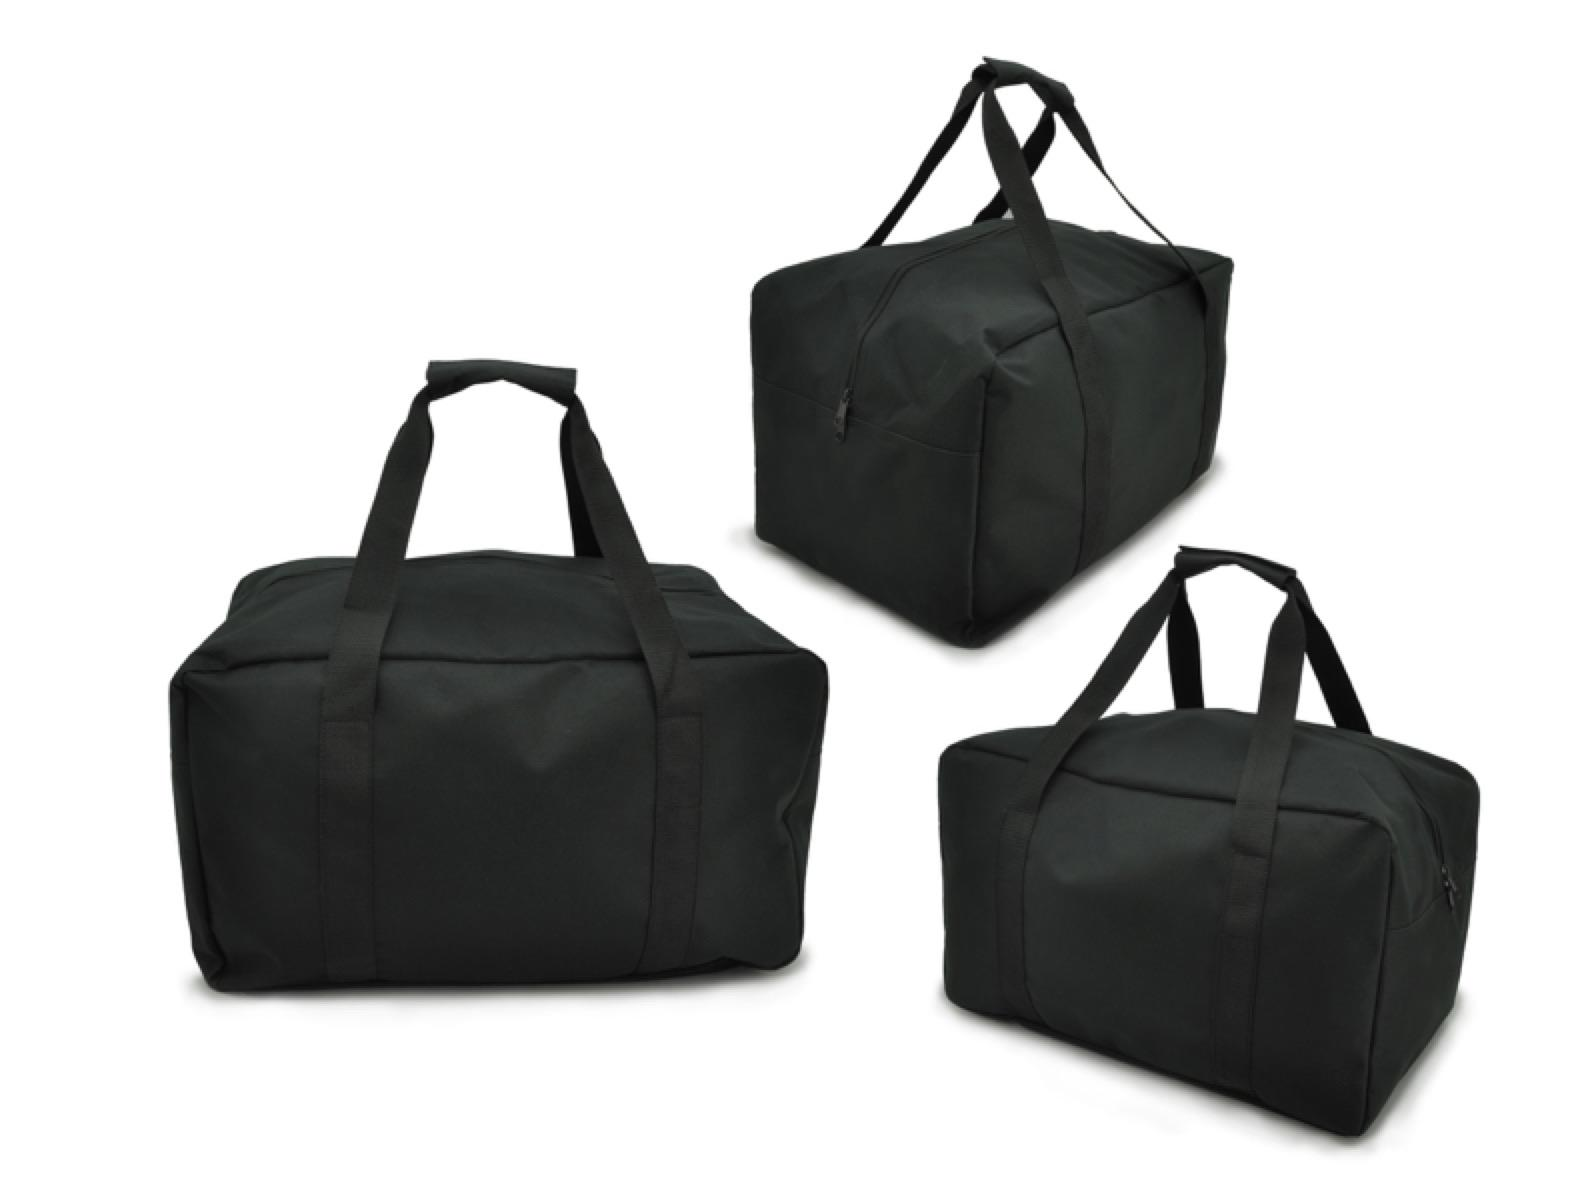 Ash Sports Bag, From 6.94